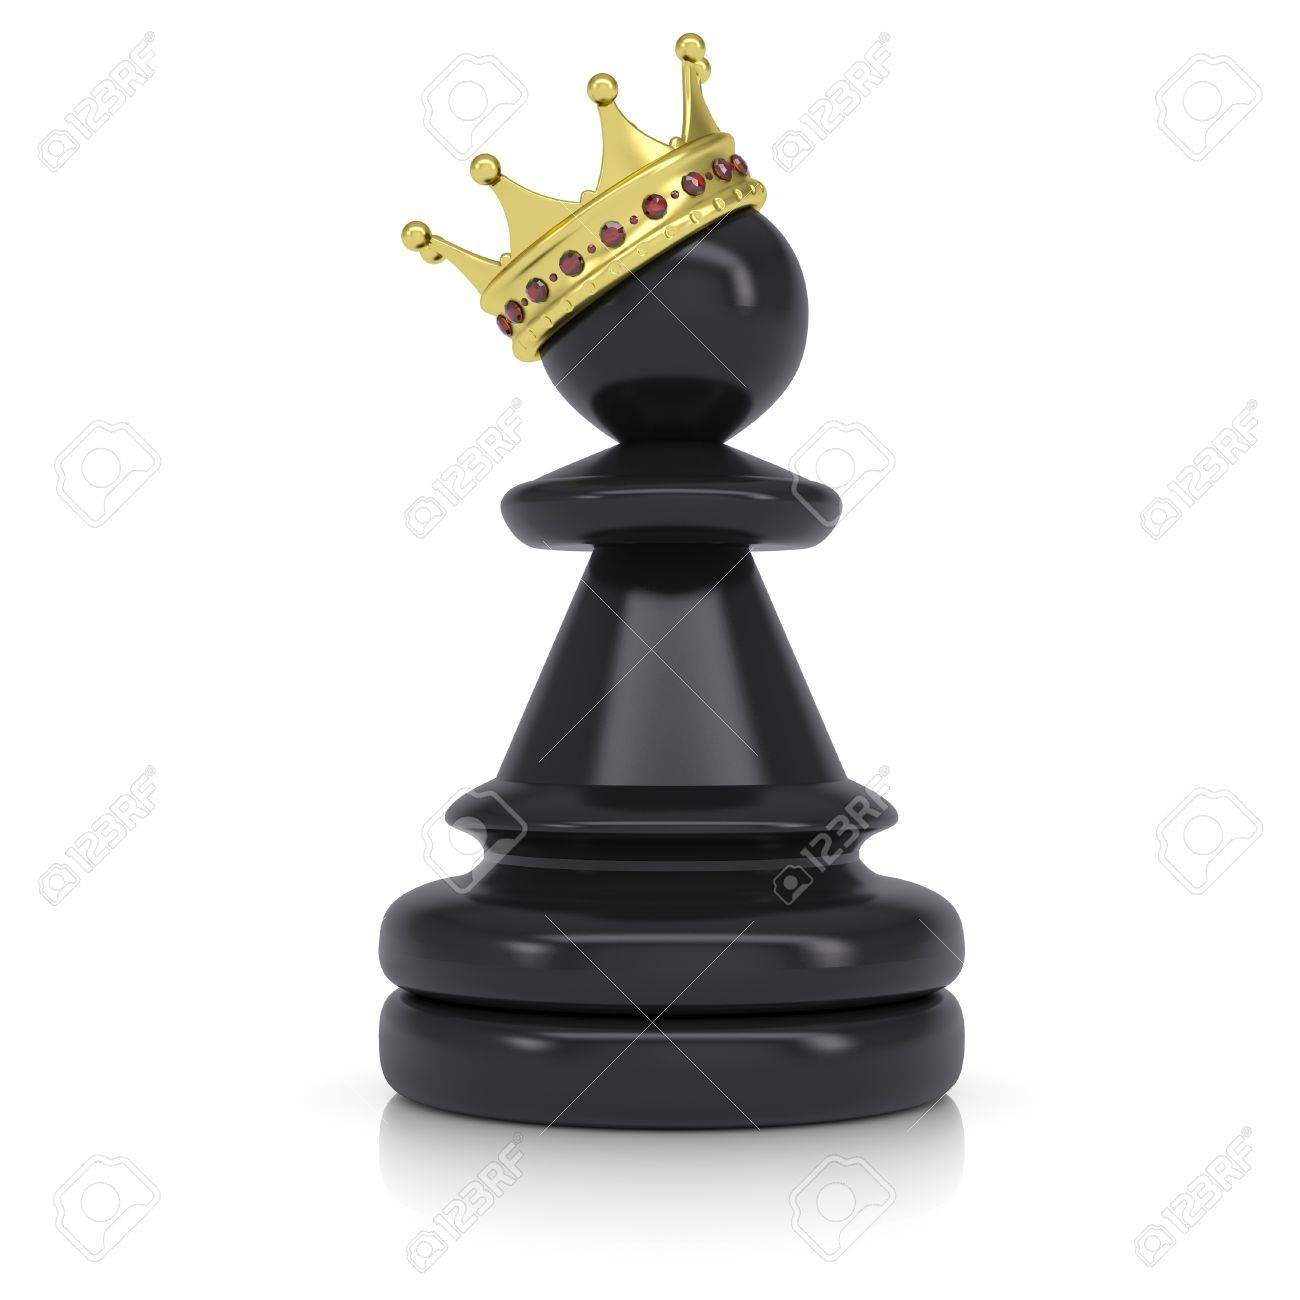 Pawn With Gold Crown Isolated On White Background Stock Photo 1300x1300